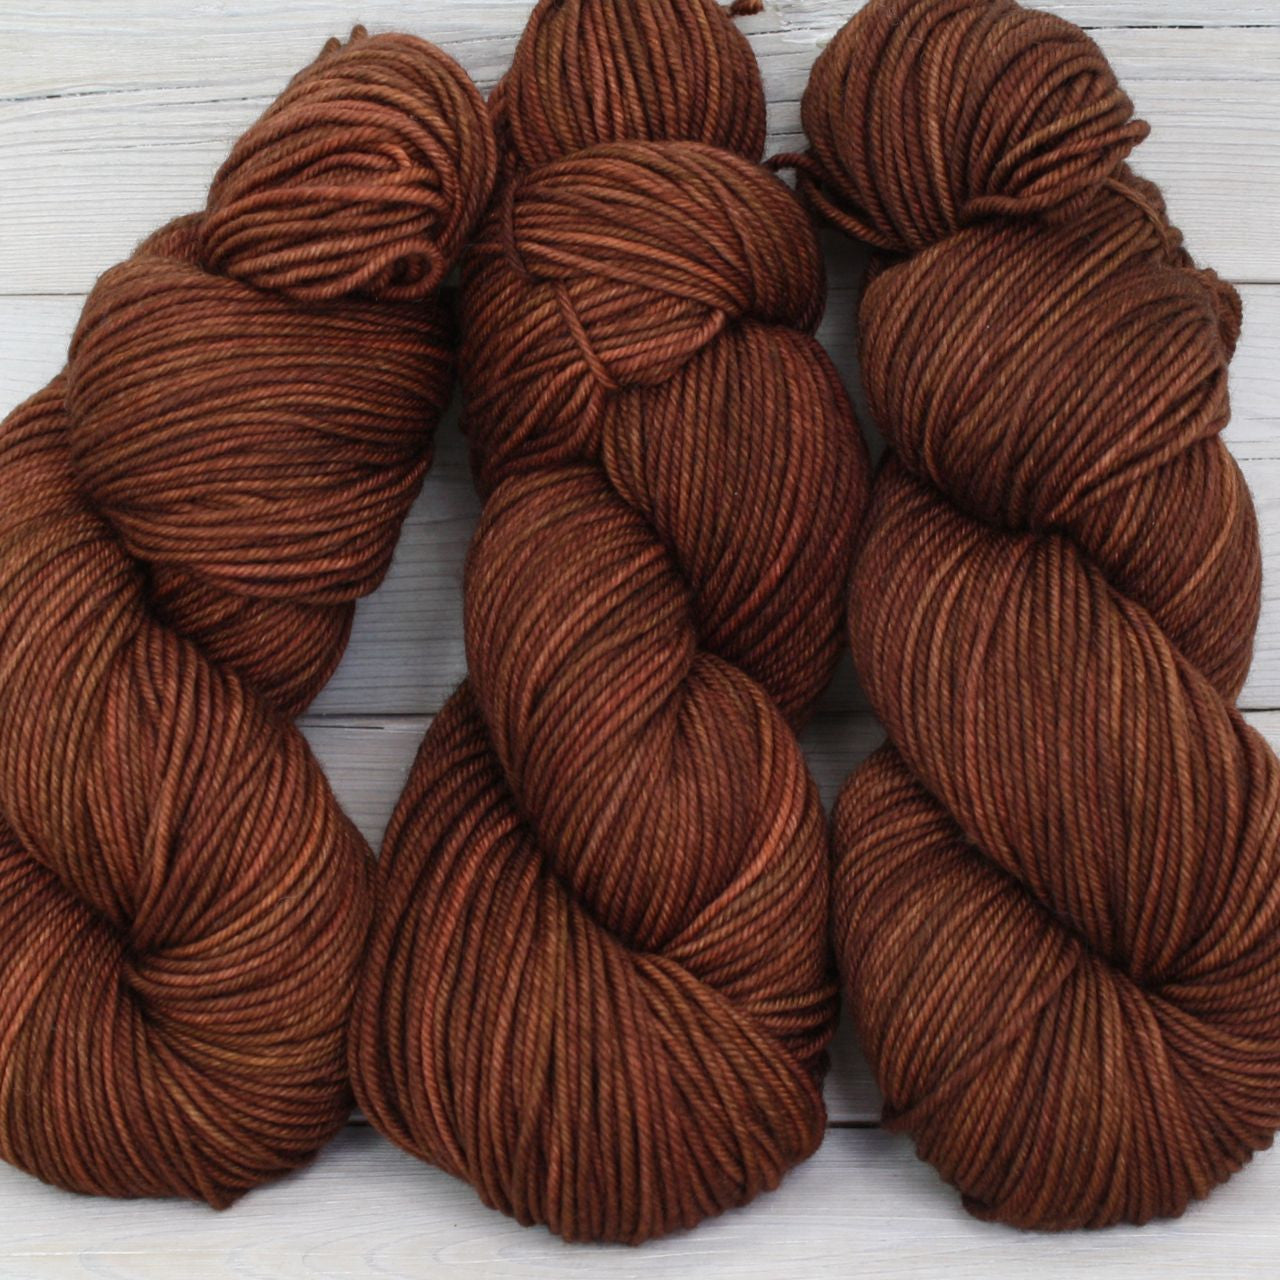 Calypso Yarn | Colorway: Cinnamon